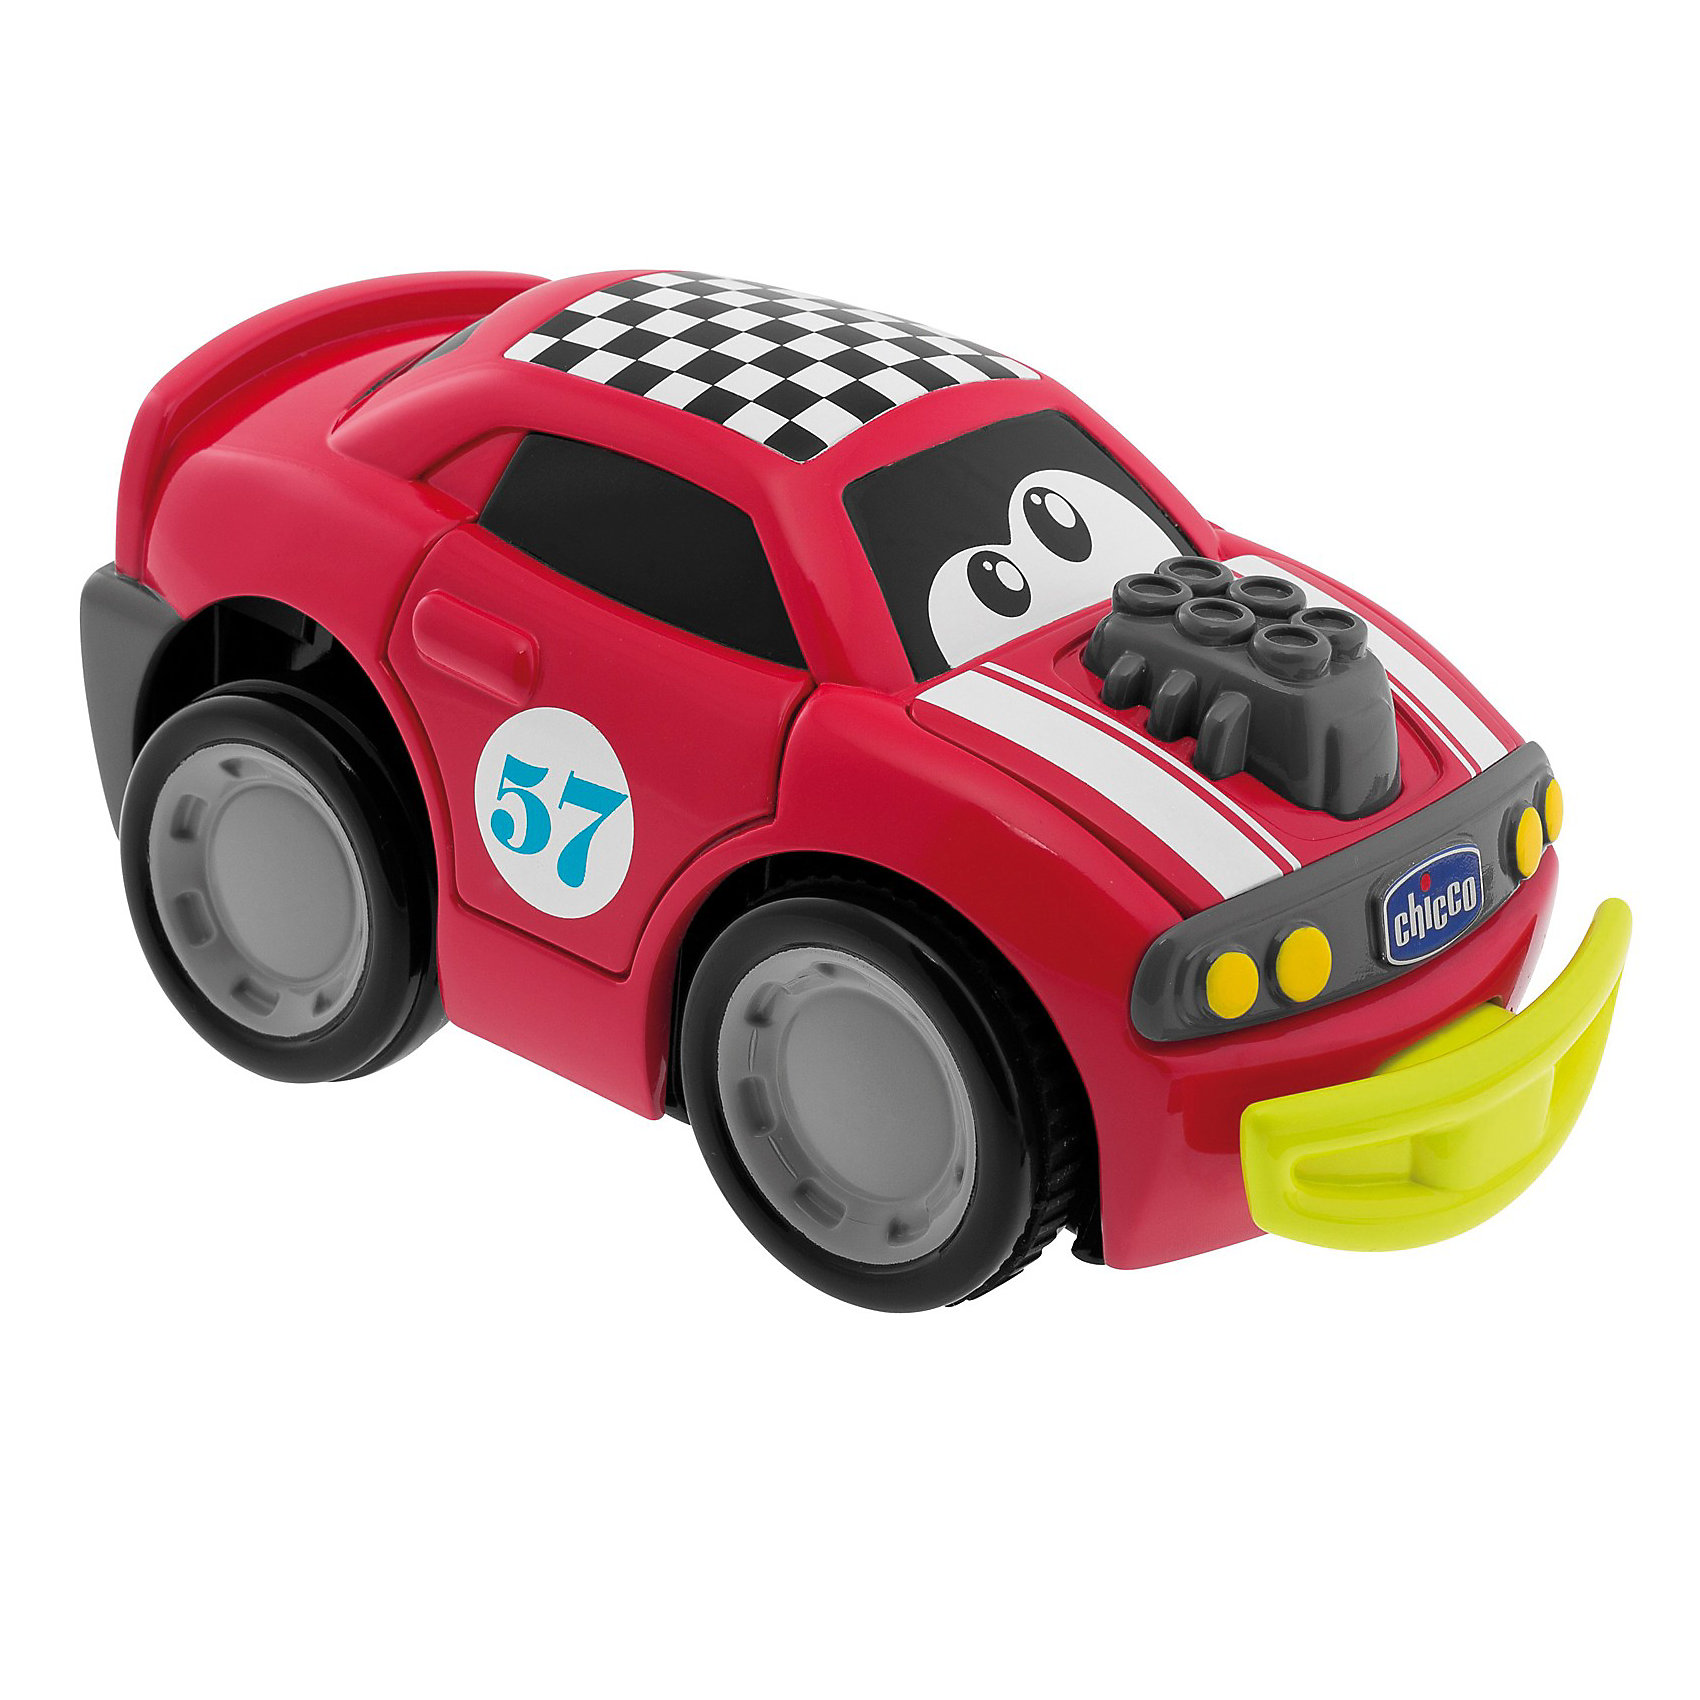 Машинка Turbo Touch Crash, красная, Chicco